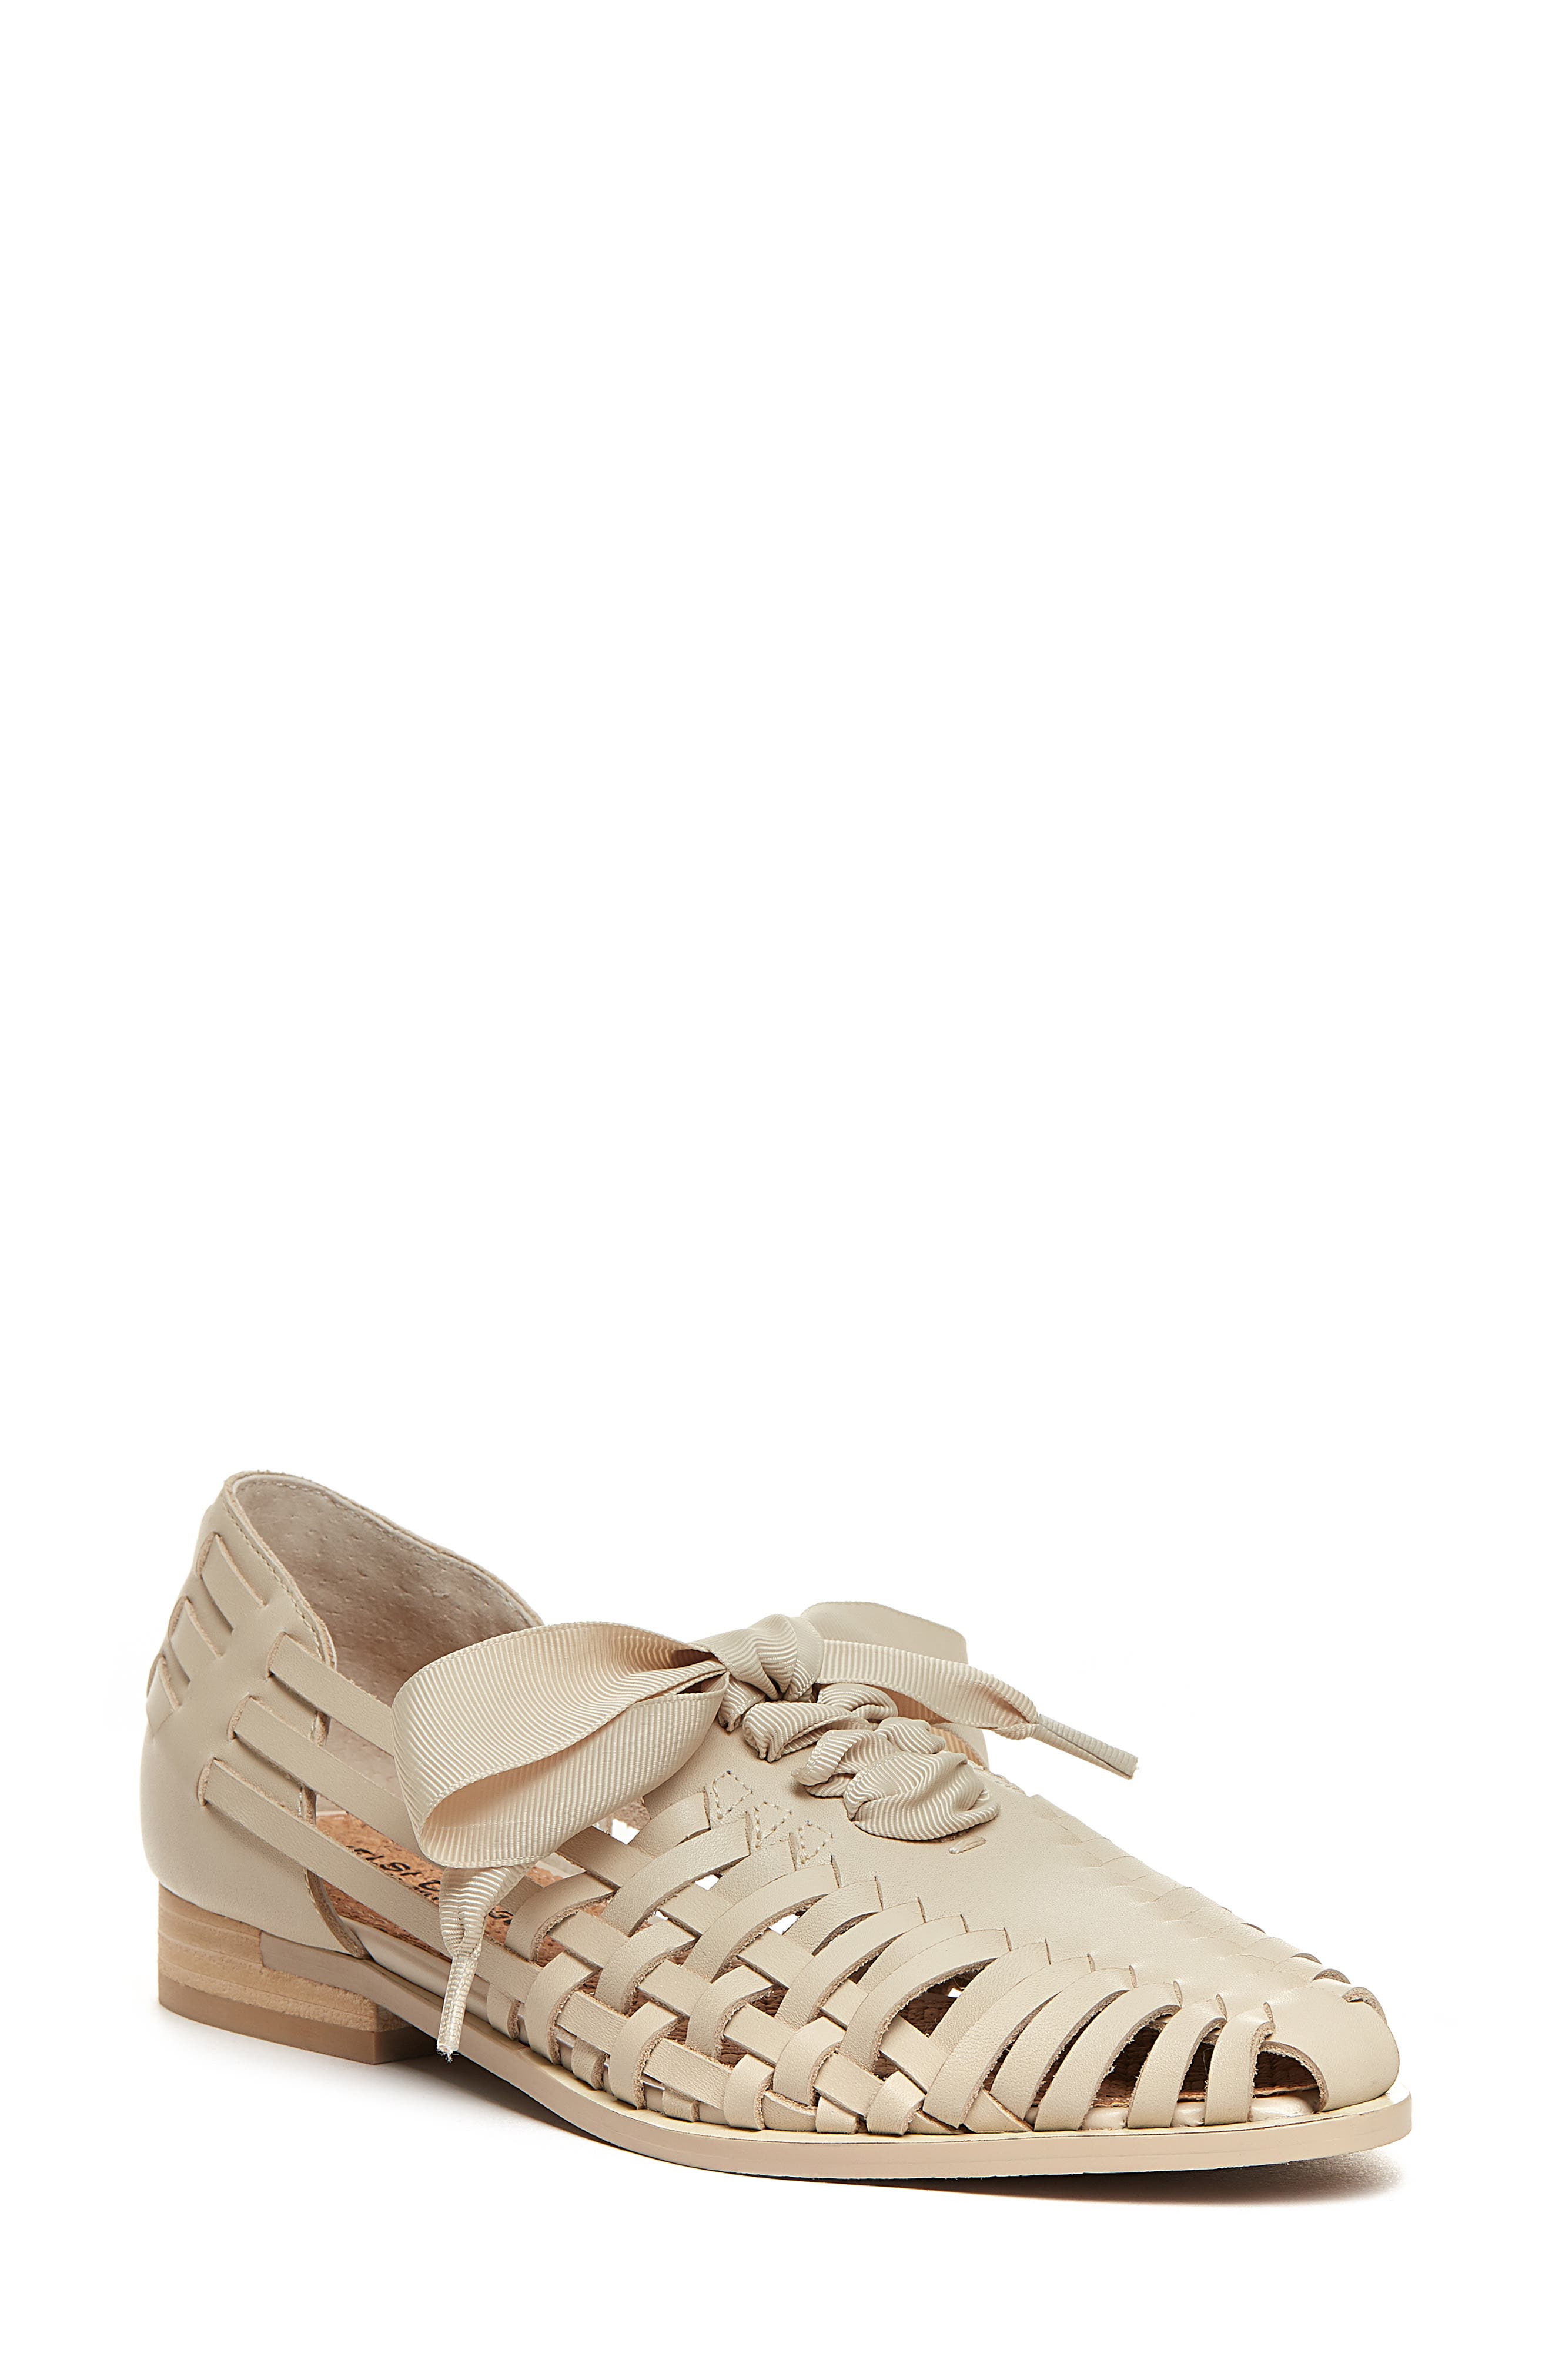 Lace-Up Braided Leather Flat